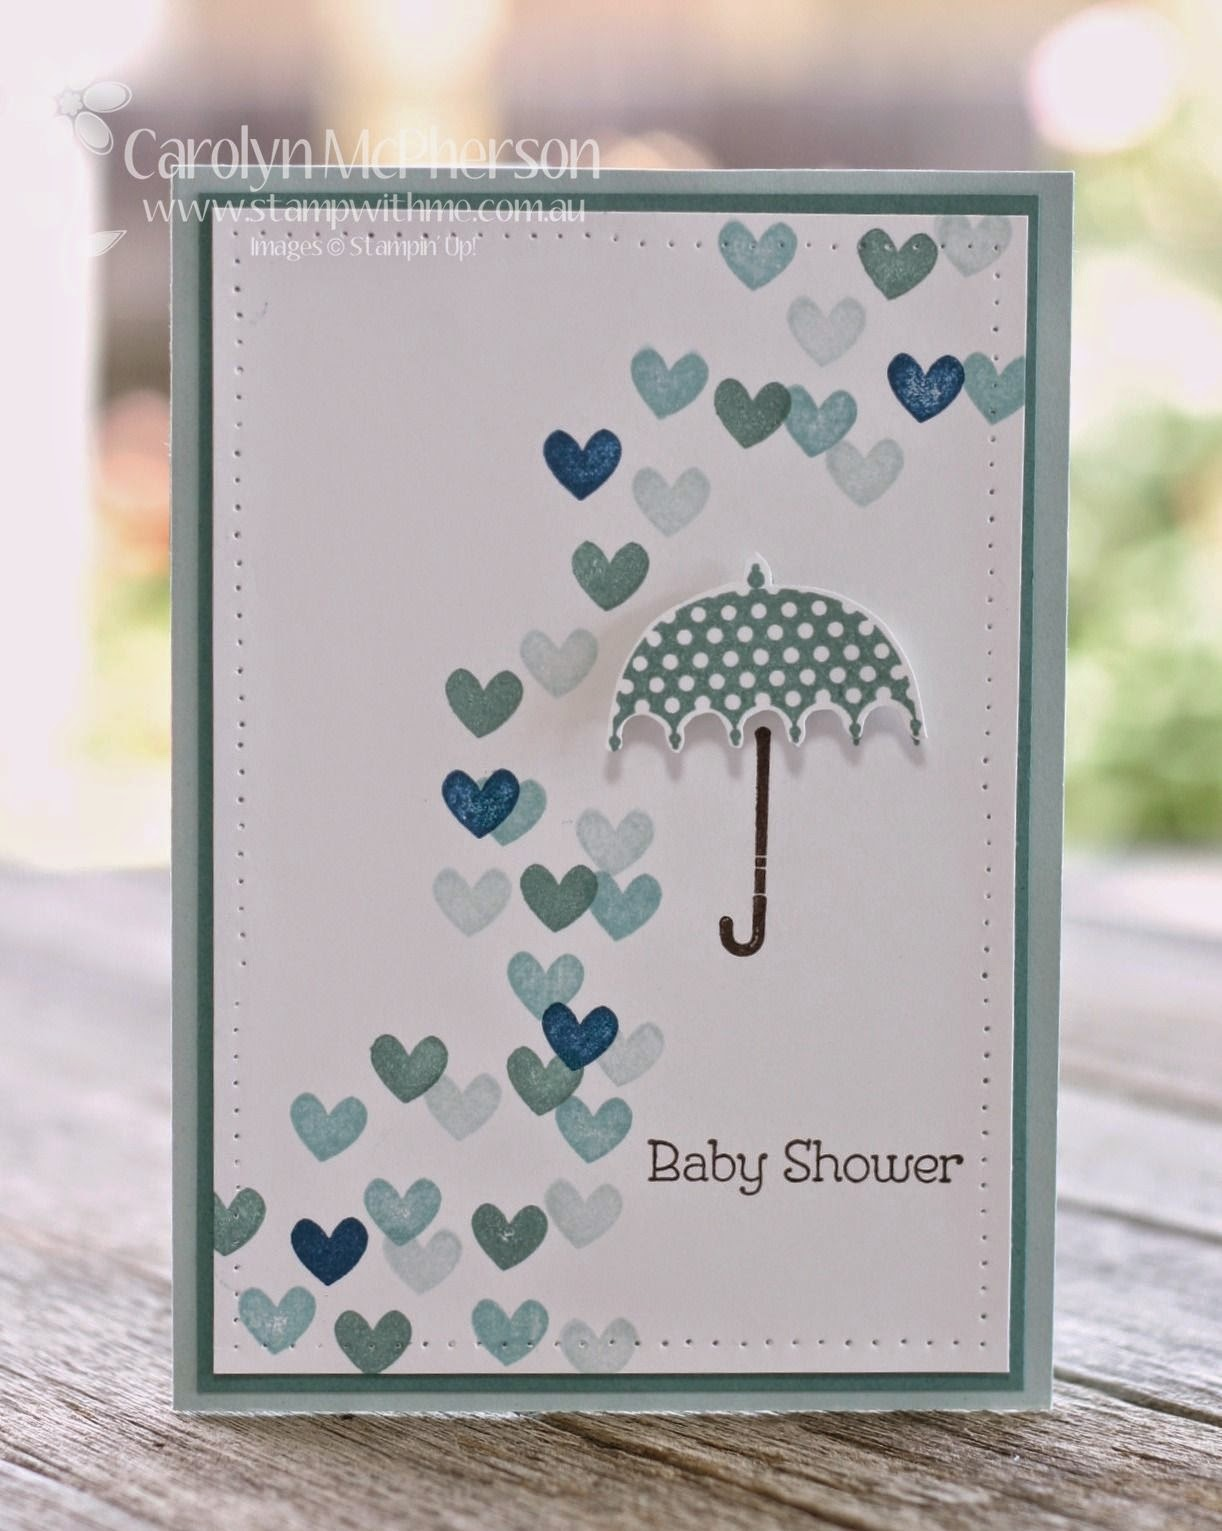 I Used A Long Retired Stamp Set: Rain Or Shine Which Had Gorgeous Little  Umbrellas And Shower Sentiments. In This Case   Baby Shower!